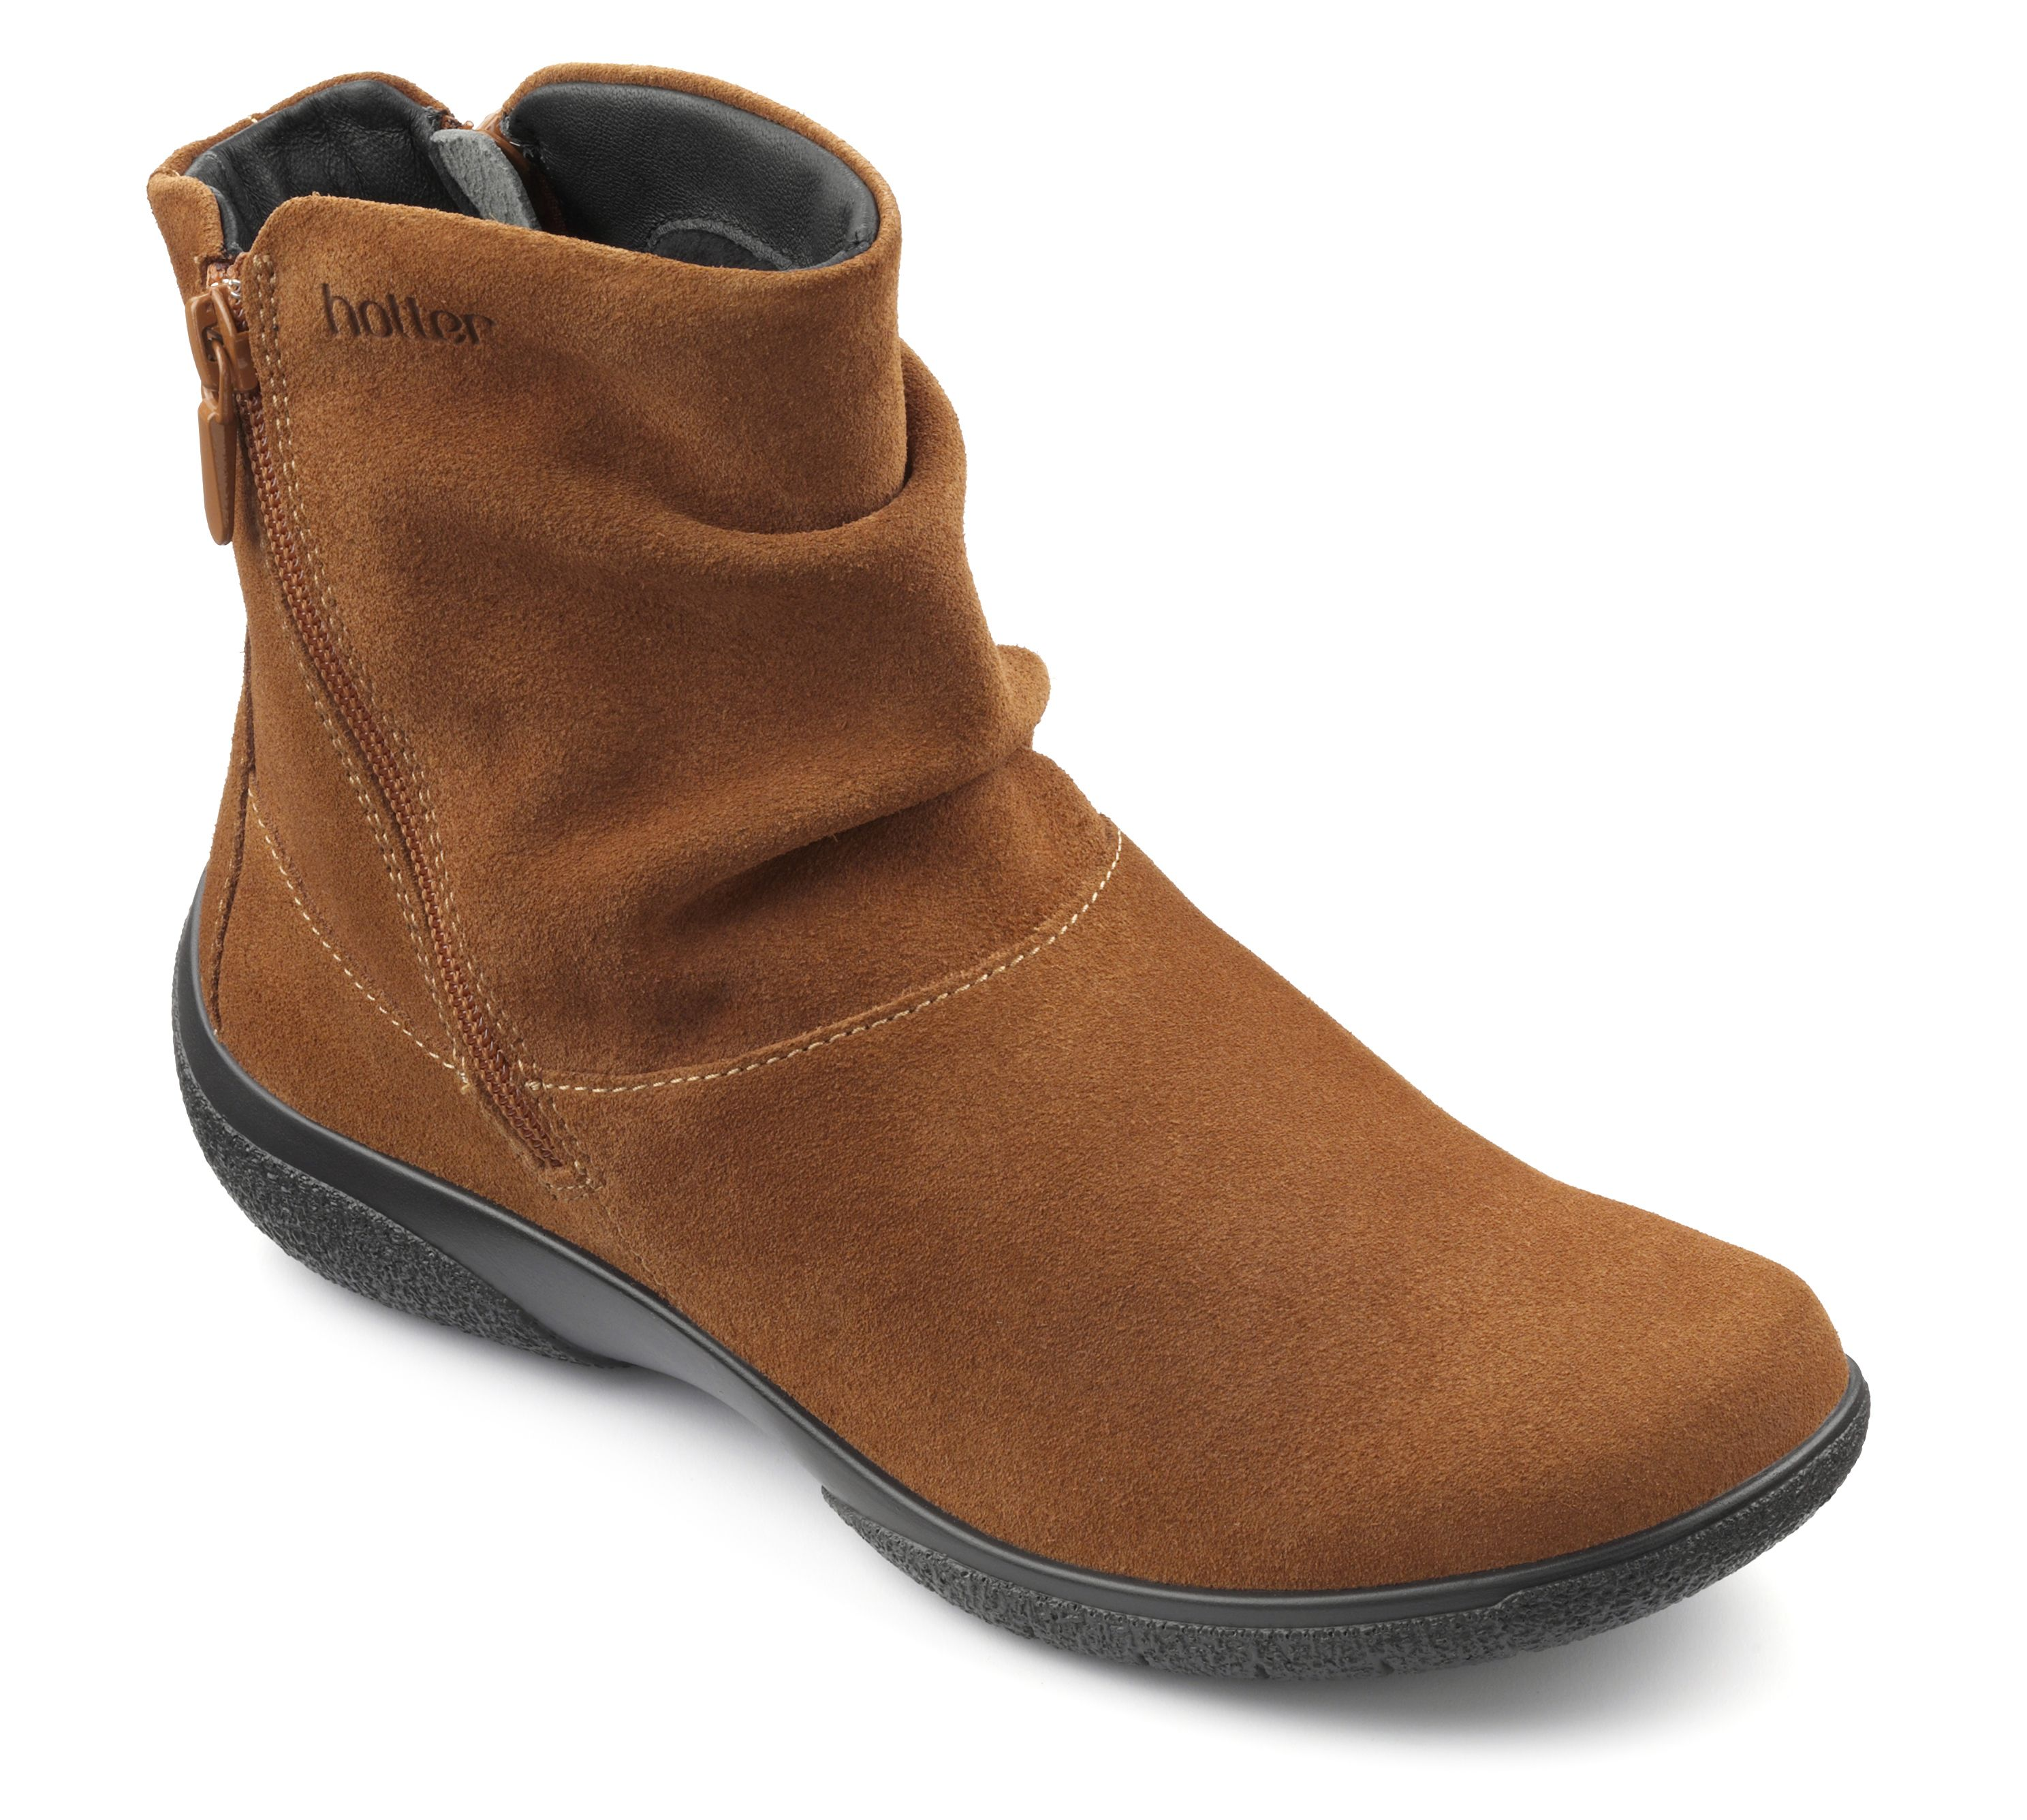 33db5bb259e Whisper Women's Boots - £75. Stay insulated from the cold with the ...